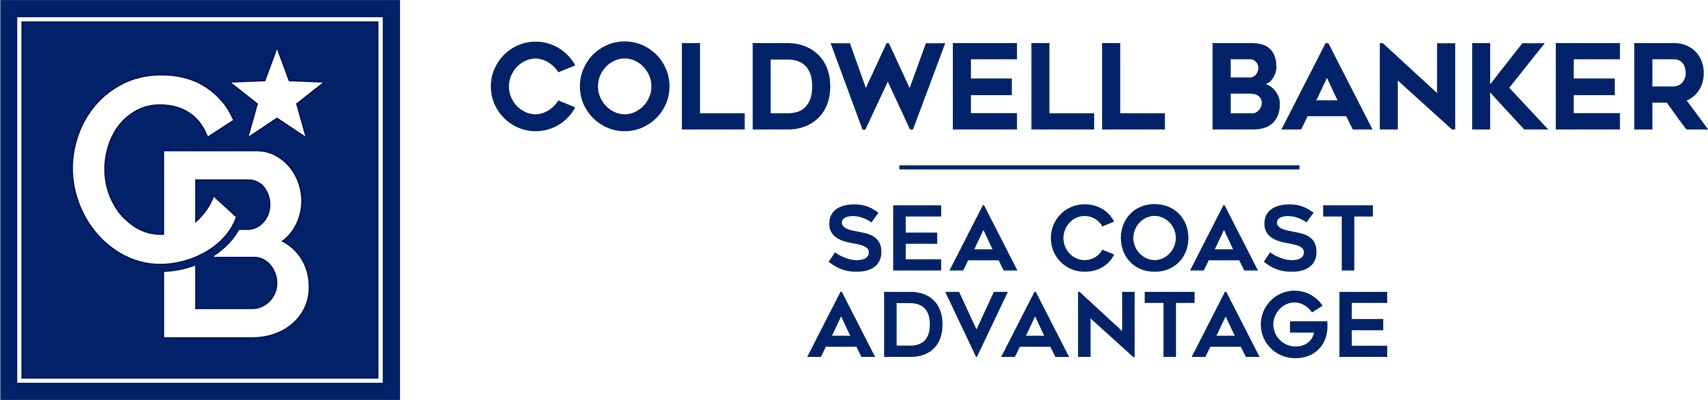 Carl Cole - Coldwell Banker Sea Coast Advantage Realty Logo